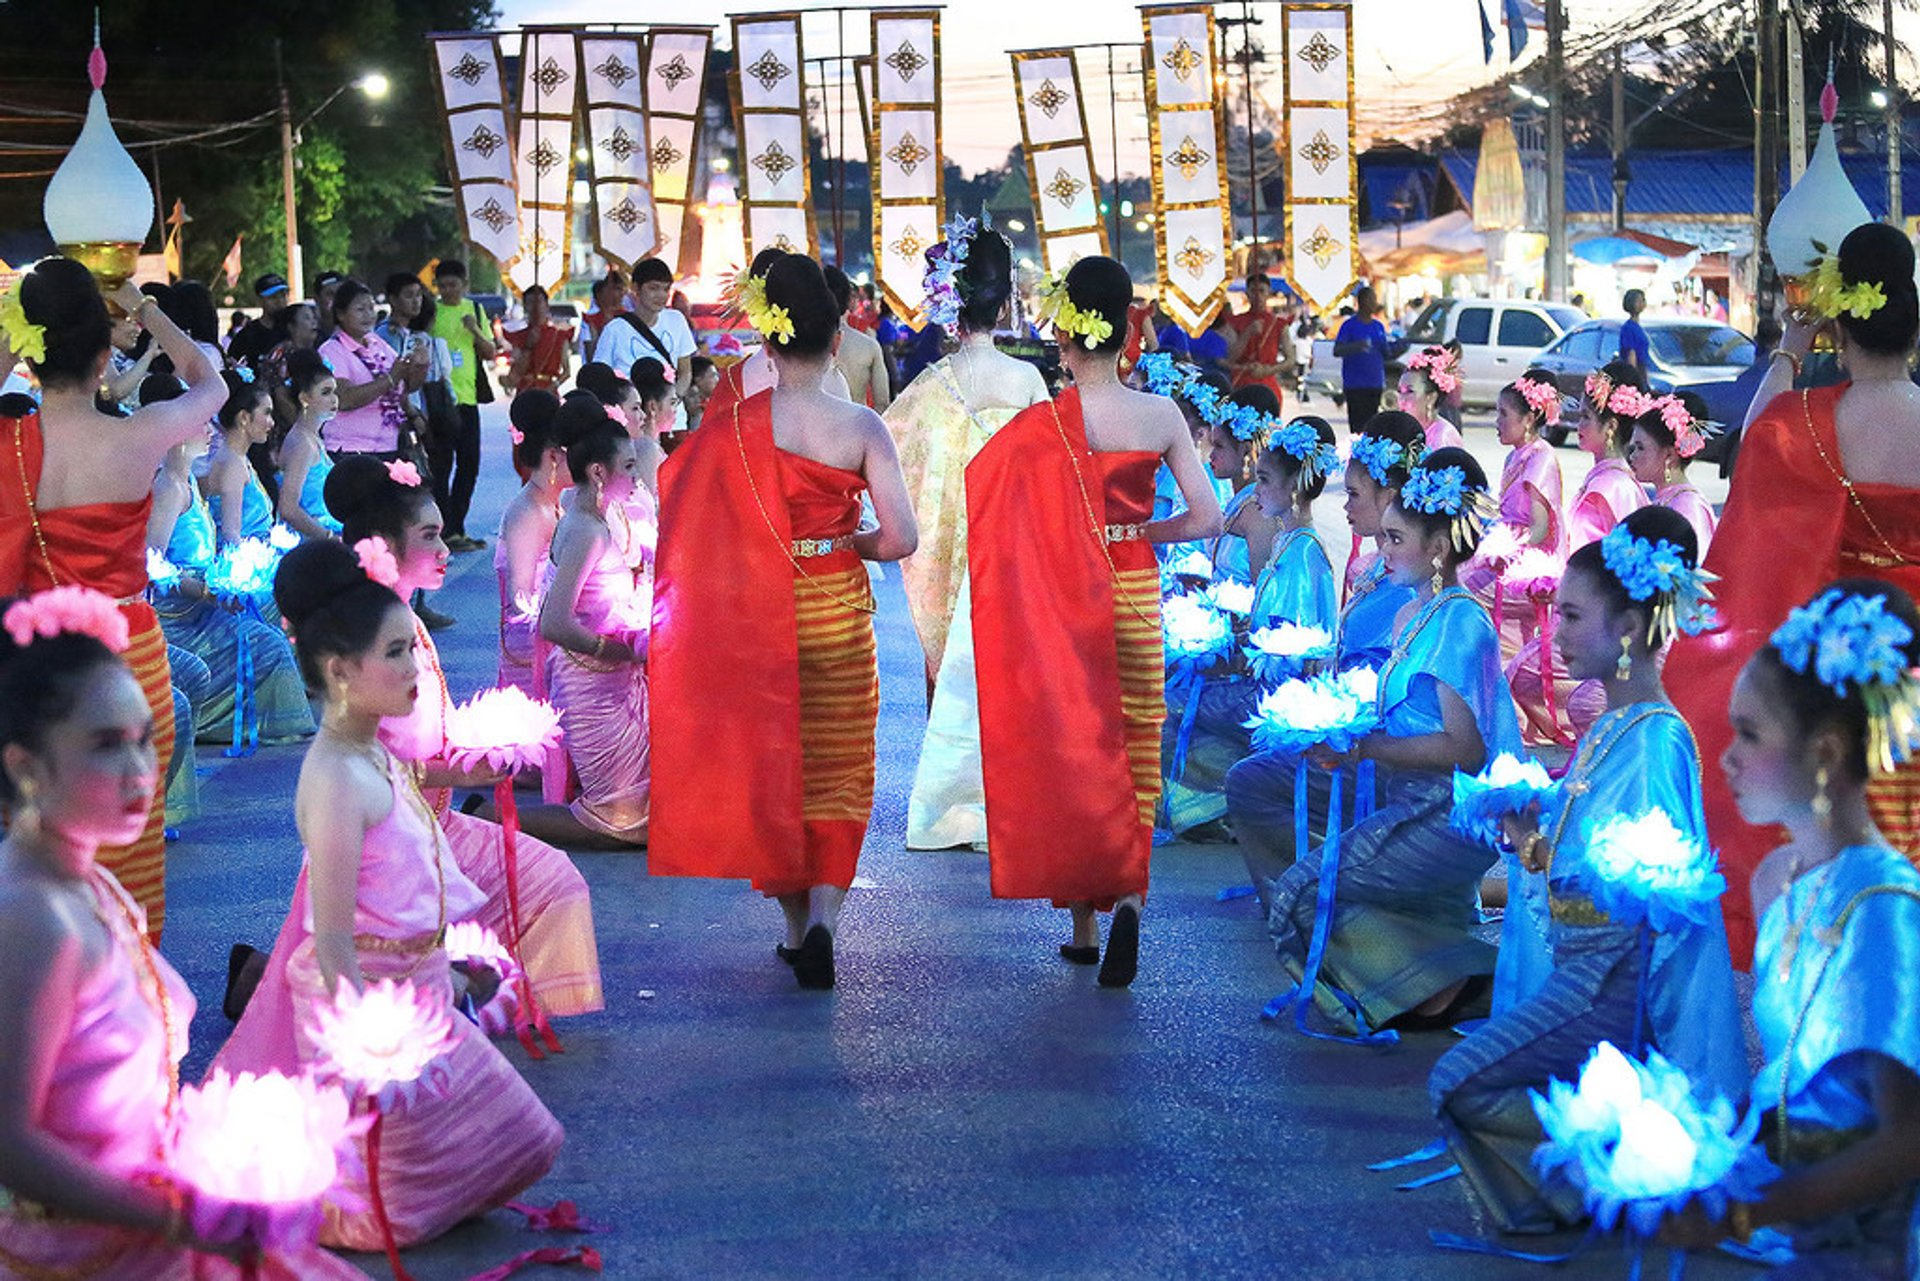 Rub Bua Festival in Thailand - Best Season 2020